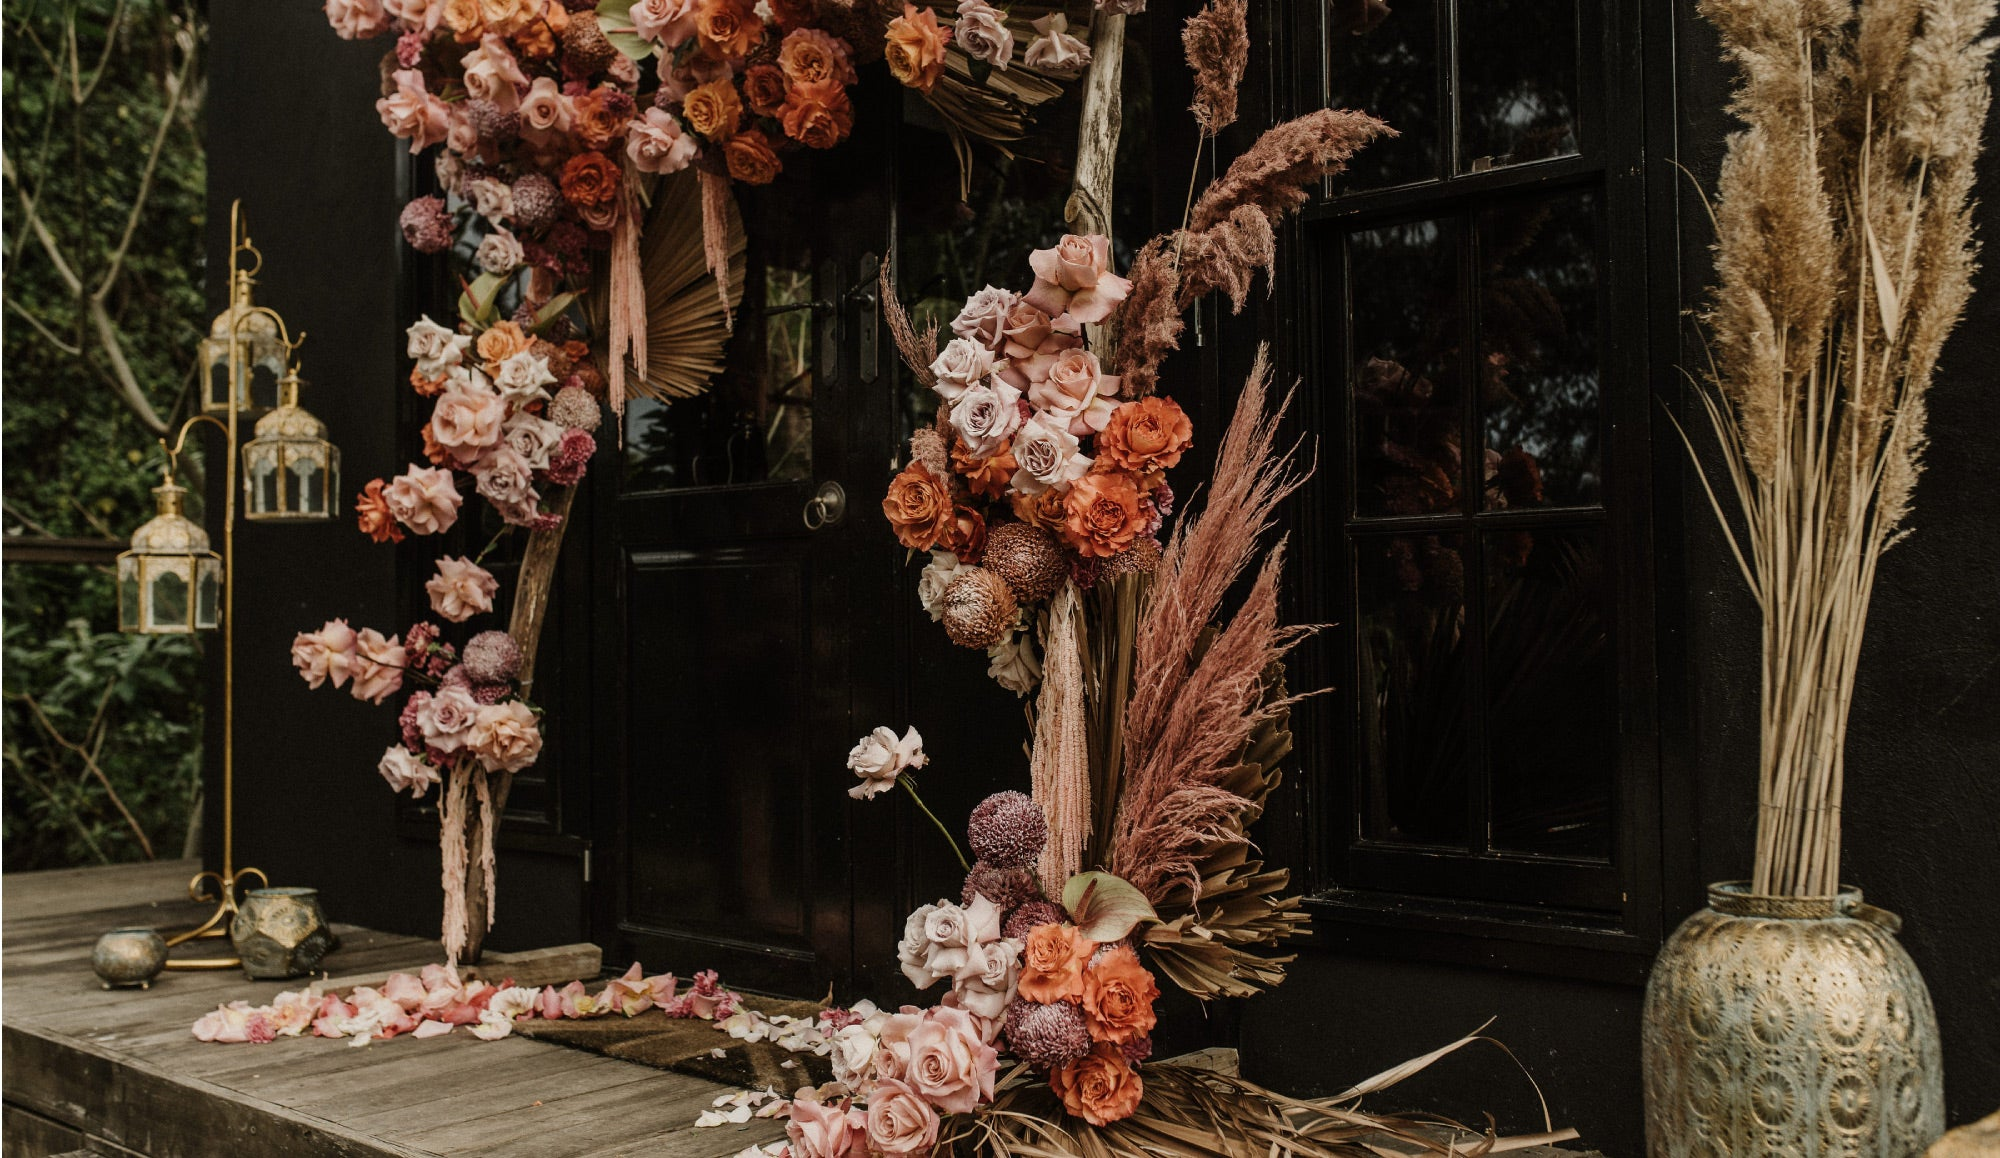 Floral styling by Luca Luna